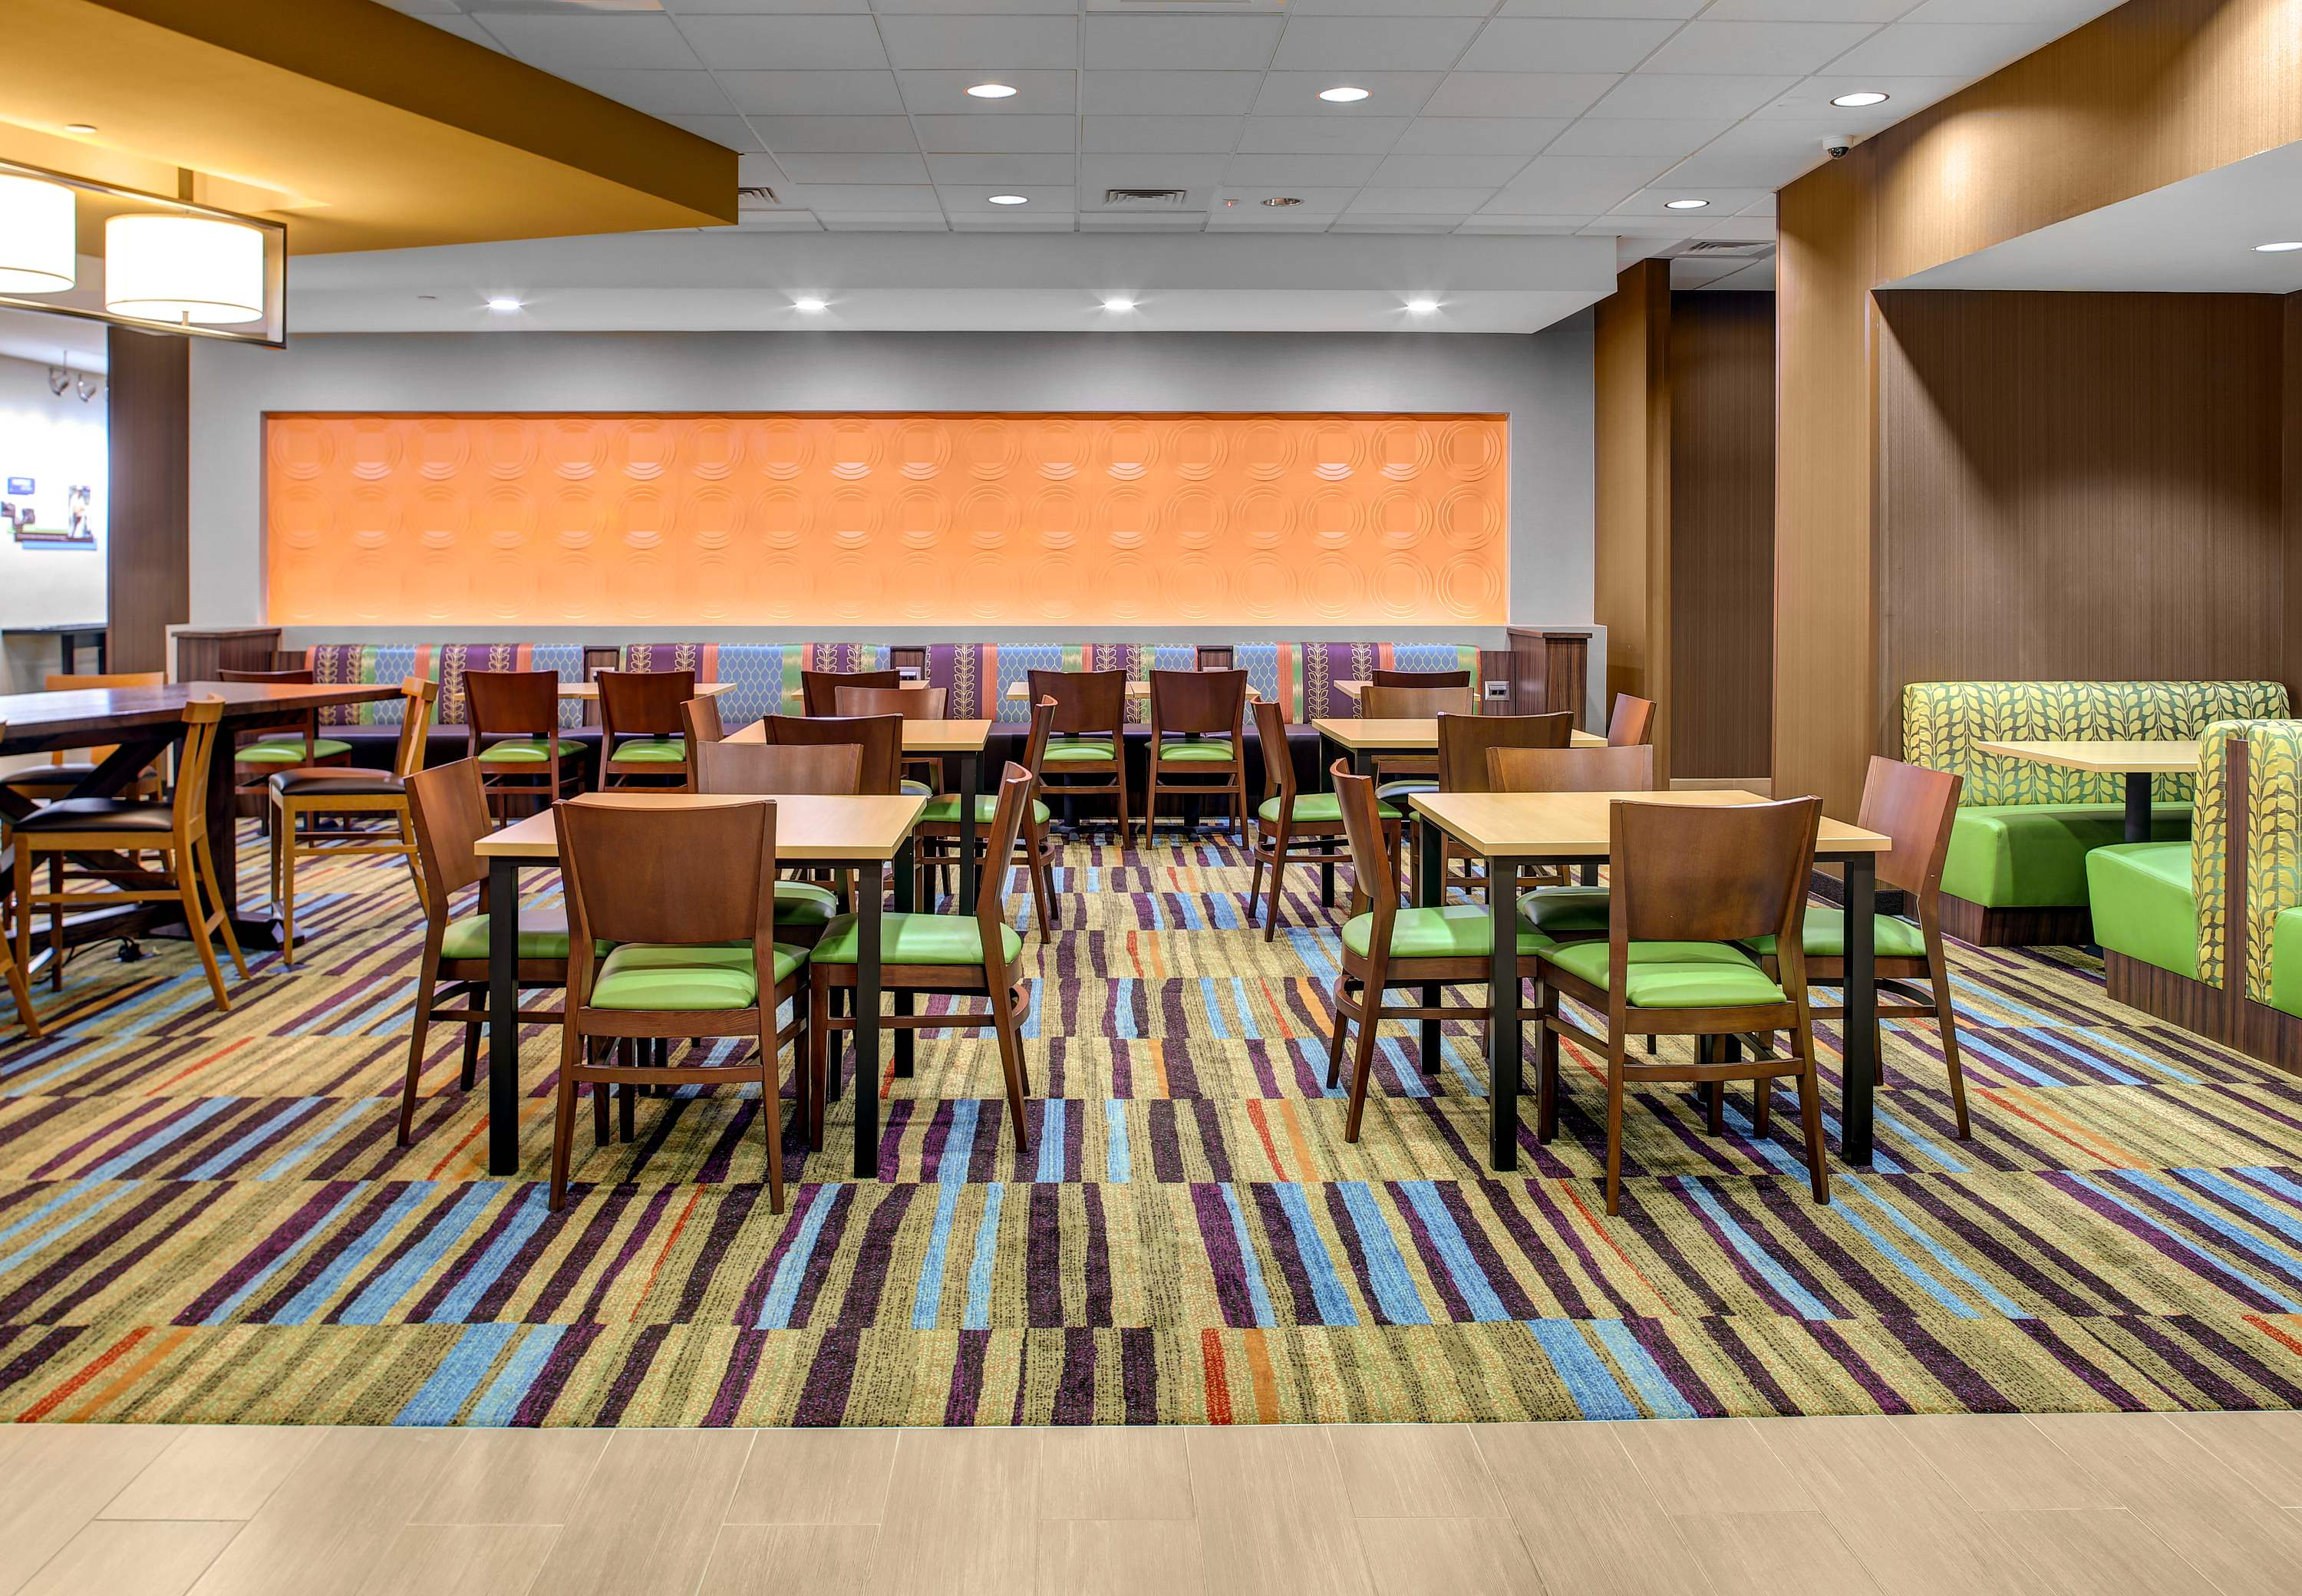 Fairfield Inn & Suites by Marriott Atlanta Stockbridge image 12